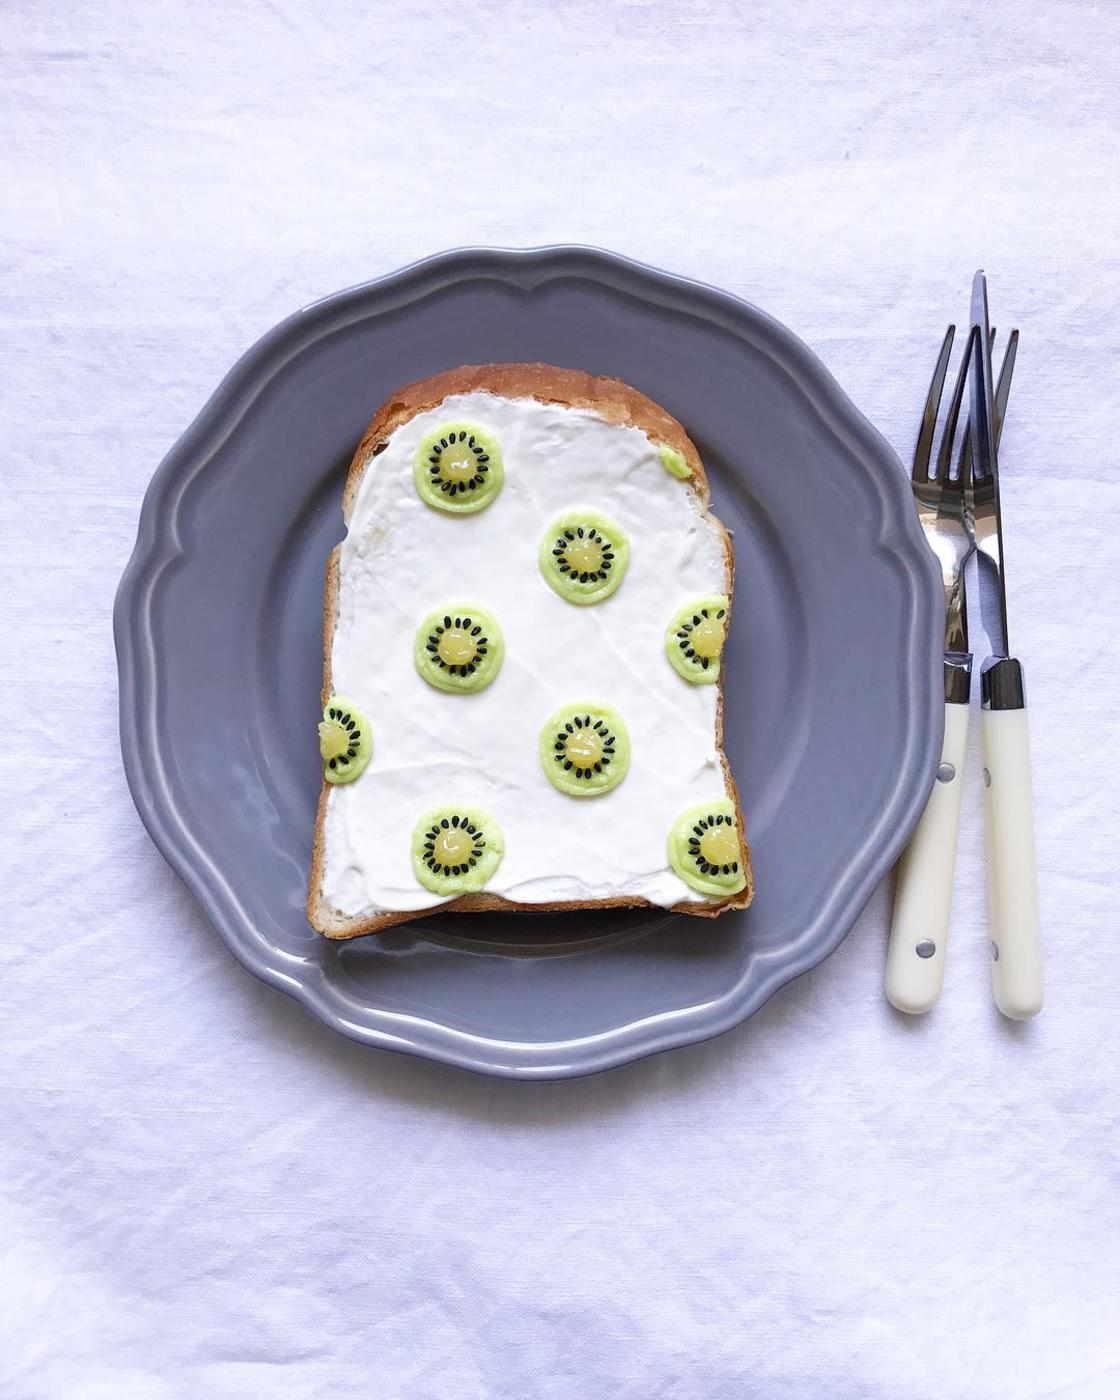 The cute creative toasts of Eiko Mori